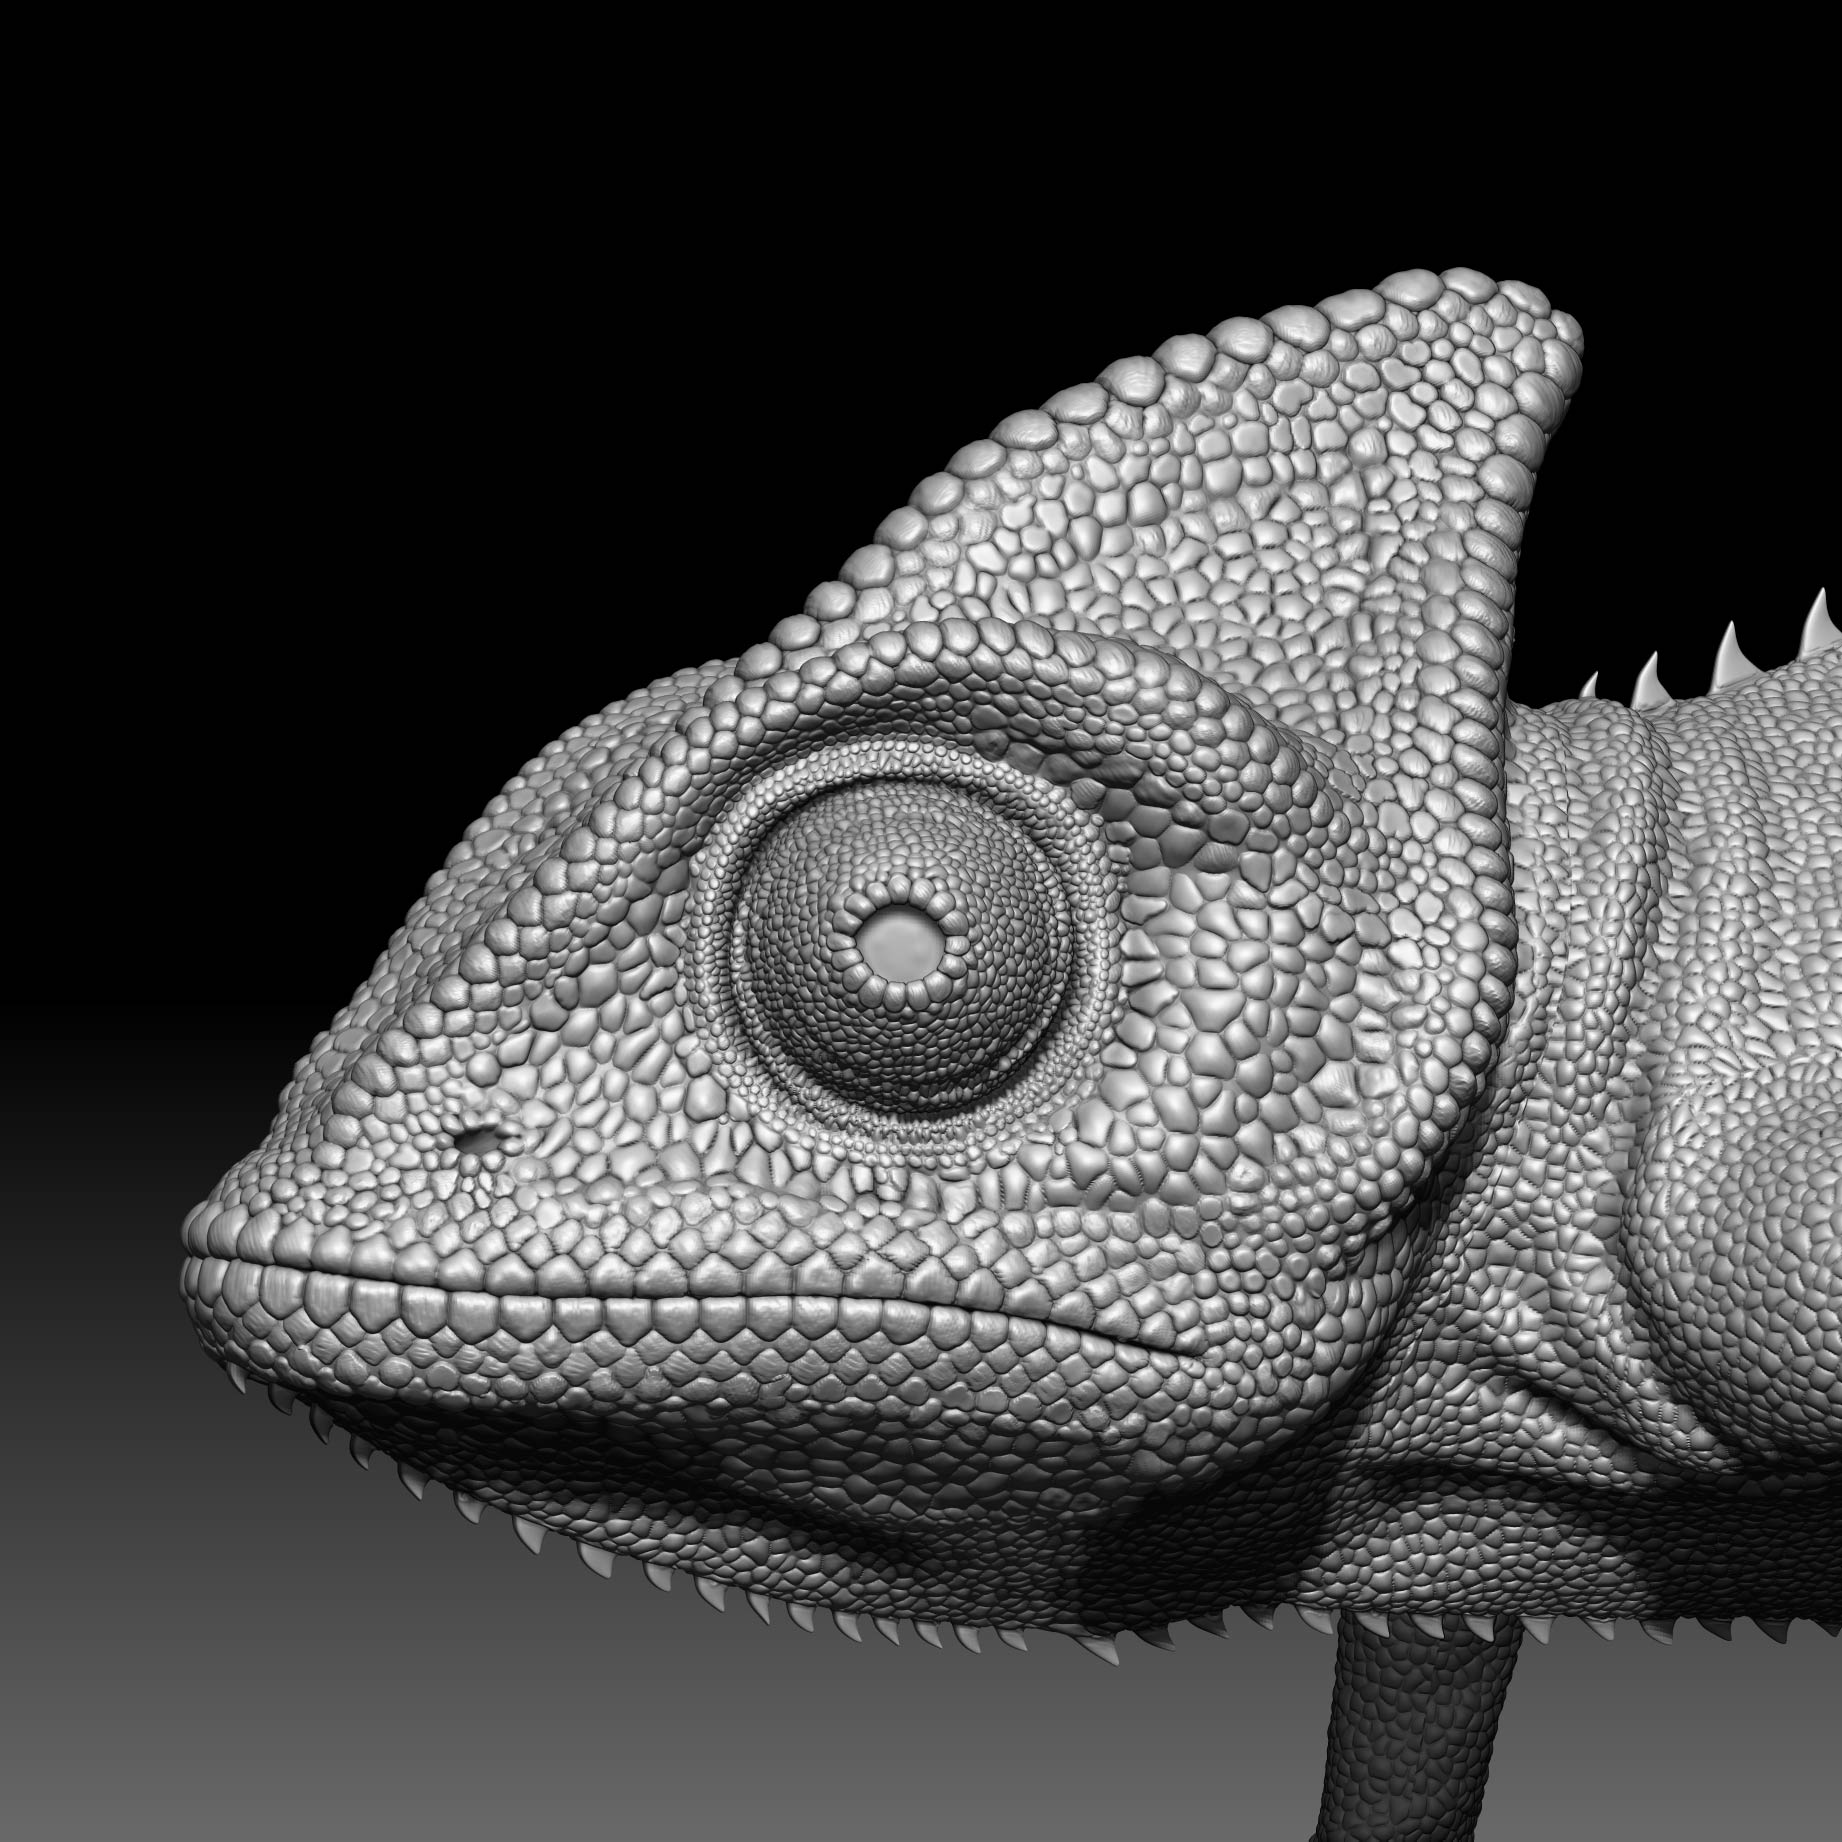 Chameleon_animal_head_zbrush-sculpt Chameleon - Animation / TRACKING and MATCHMOVING / VFX